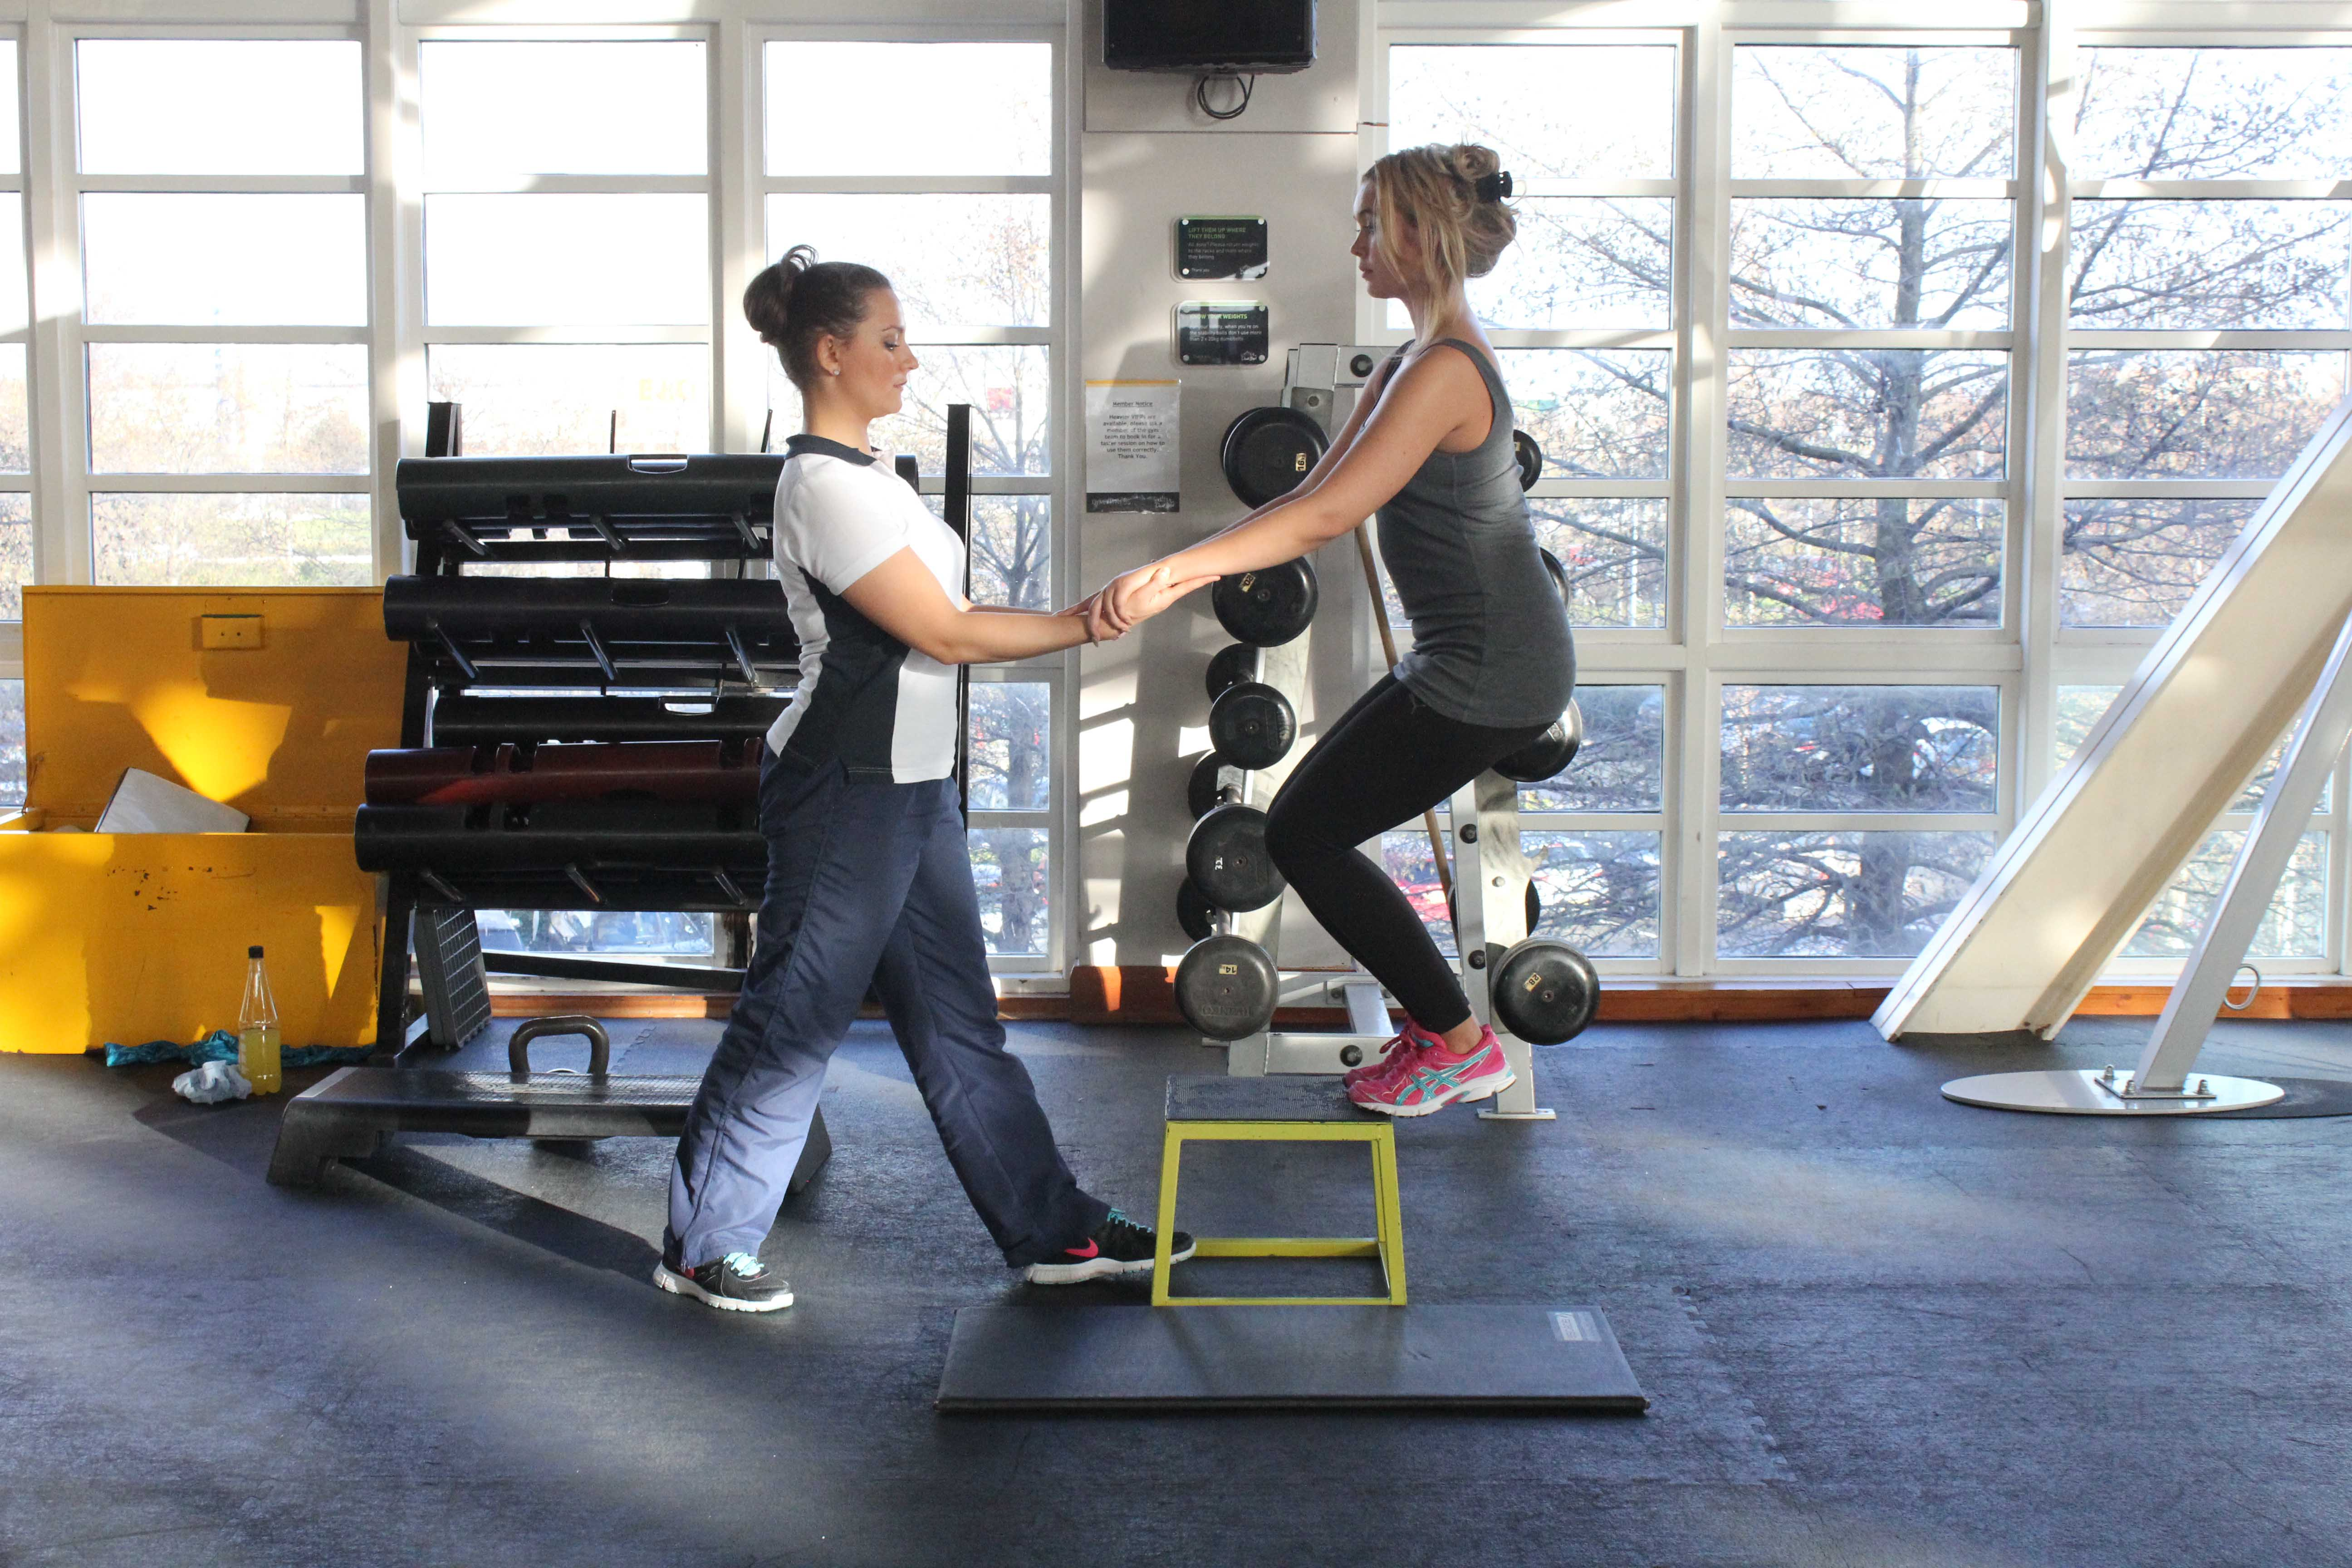 Progressive strengthening exercises for the foot and ankle, assisted by specialist MSK physiotherapist